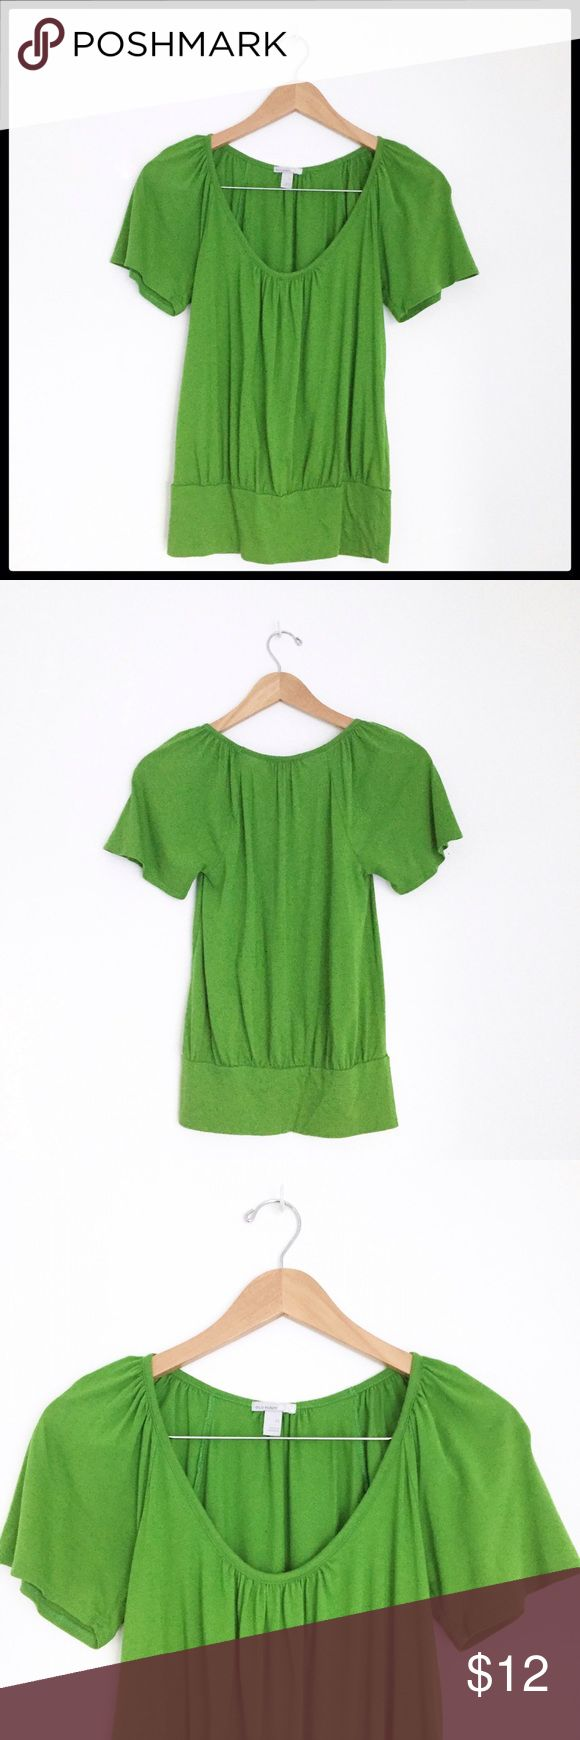 Old Navy Short Sleeve Top Beautiful bright green short sleeve peasant style top from Old Navy! Great condition! Old Navy Tops Tees - Short Sleeve